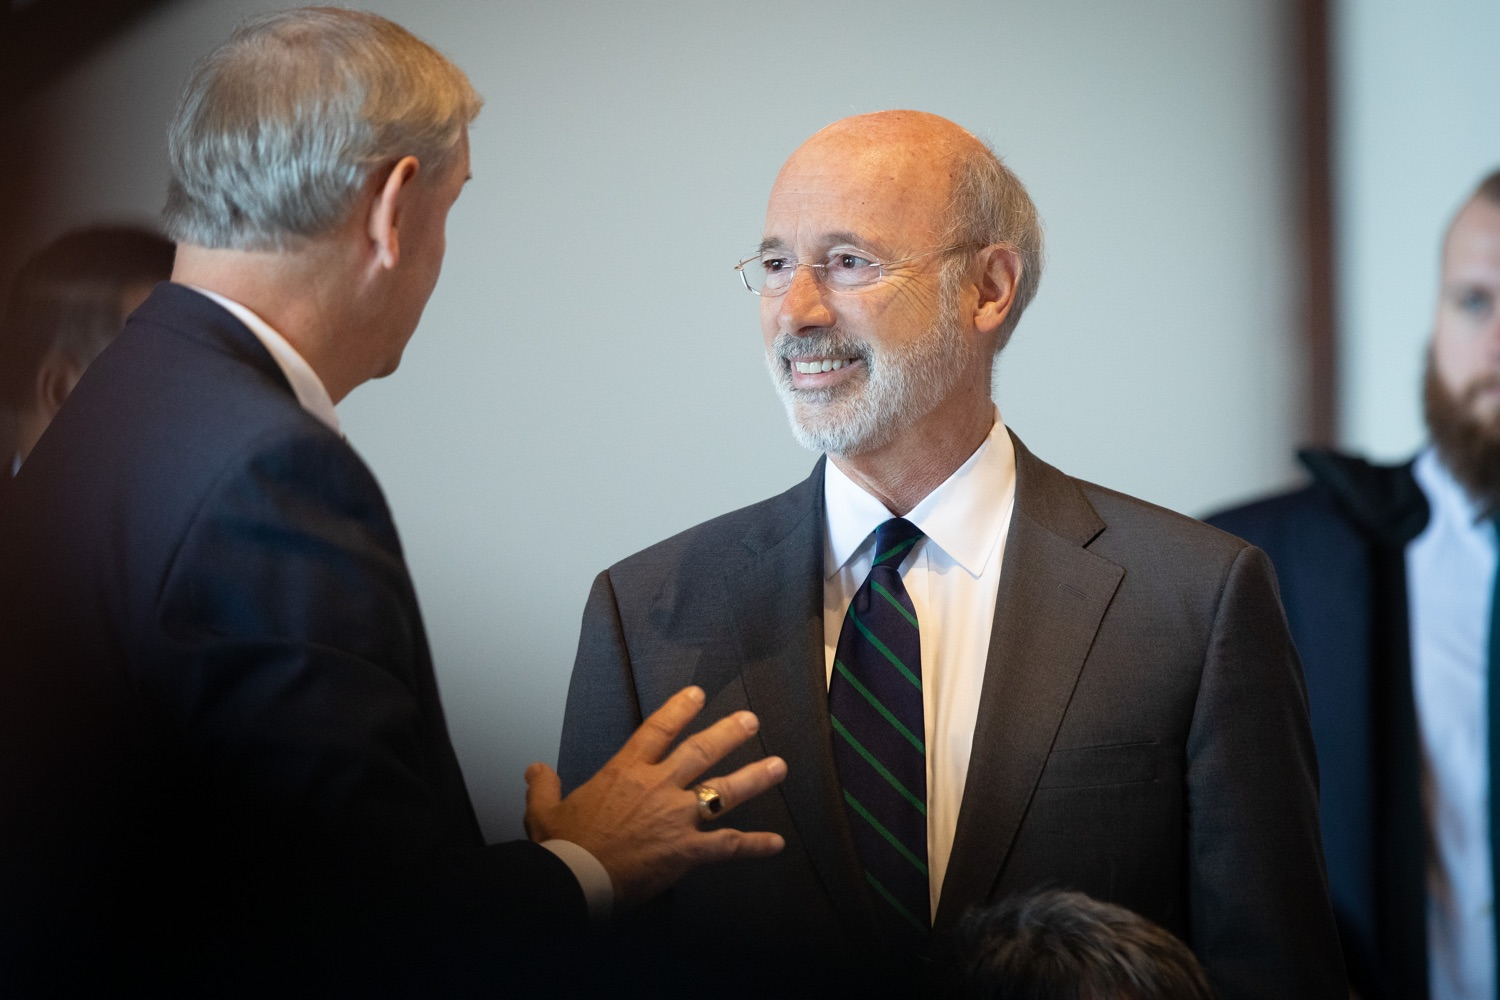 "<a href=""http://filesource.abacast.com/commonwealthofpa/photo/17467_gov_opioids_dz_019.JPG"" target=""_blank"">⇣ Download Photo<br></a>Boalsburg, PA  Governor Tom Wolf speaking with summit attendees.  Governor Tom Wolf today kicked off his administrations first Opioid Command Center Opioid Summit: Think Globally, Act Locally, which brought together 200 individuals helping their communities fight the opioid crisis, including community organizations, non-profits, schools, health care workers, addiction and recovery specialists, and families affected by the opioid crisis.  Tuesday, October 1, 2019"